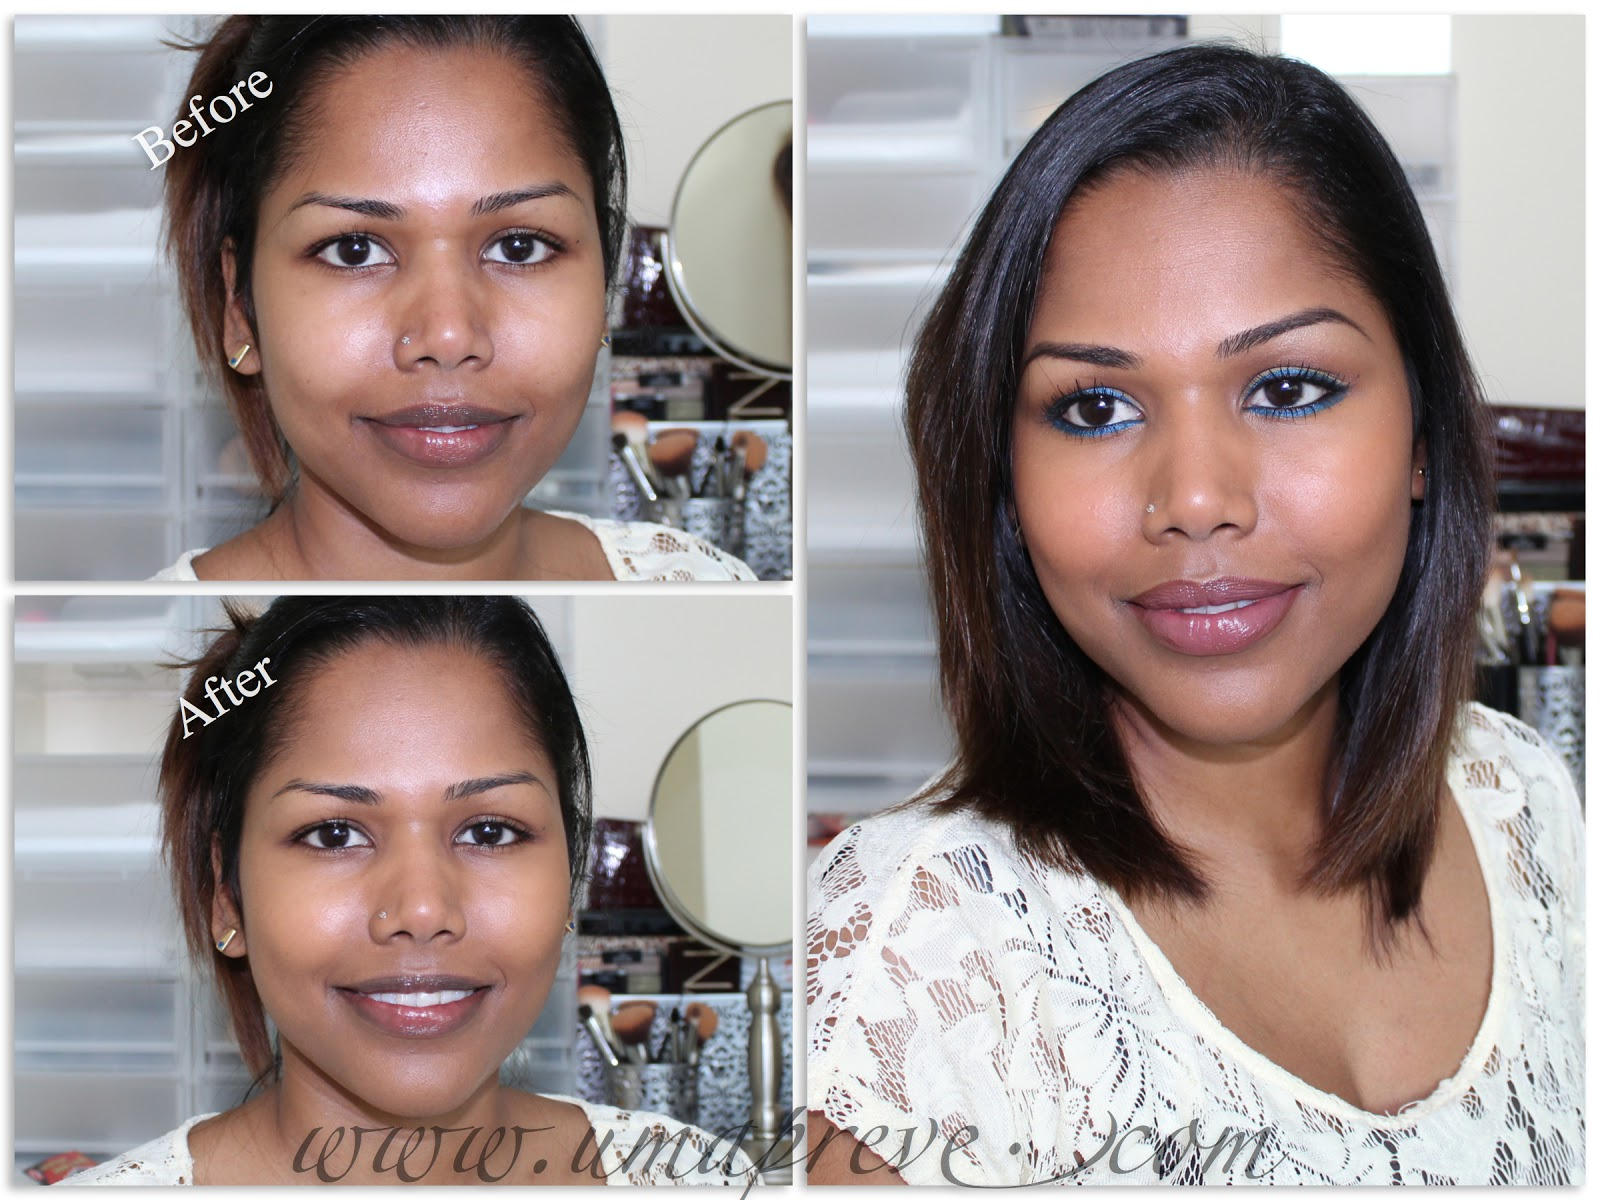 Umapreve make up forever hd foundation review 173 make up forever hd foundation review 173 baditri Image collections